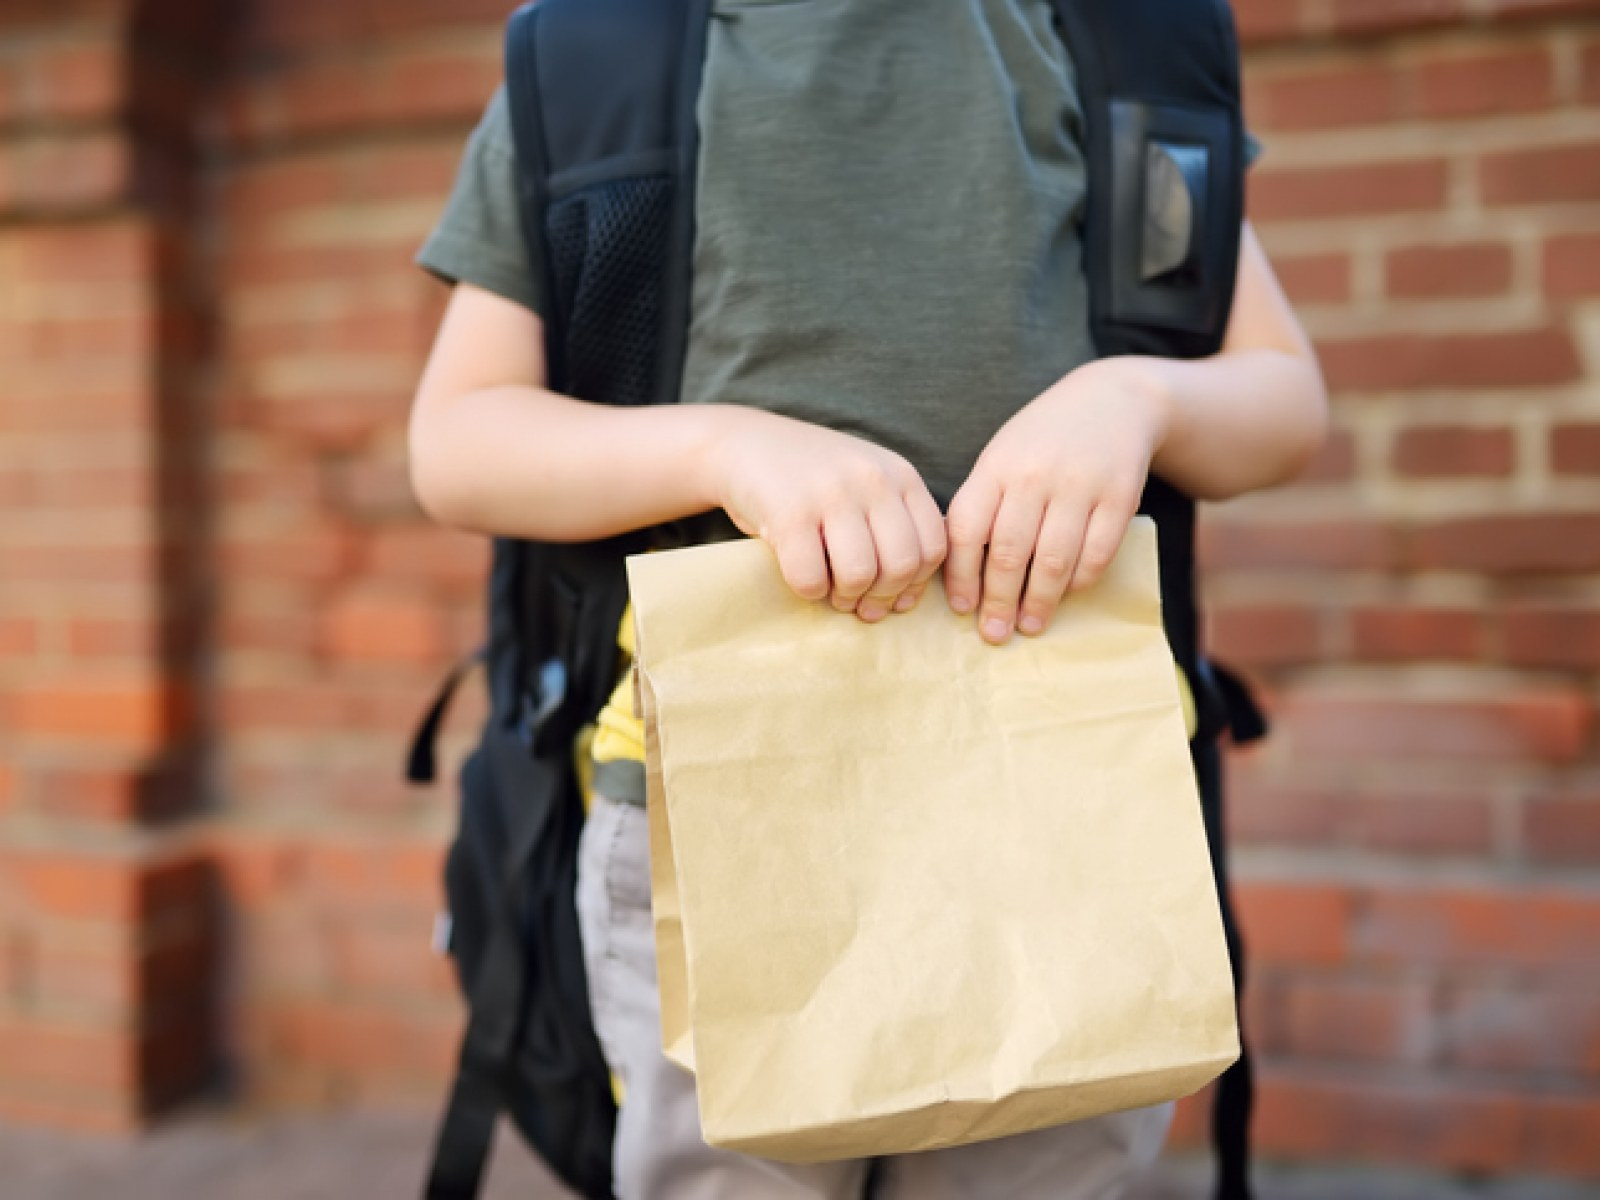 school-child-holding-sack-lunch